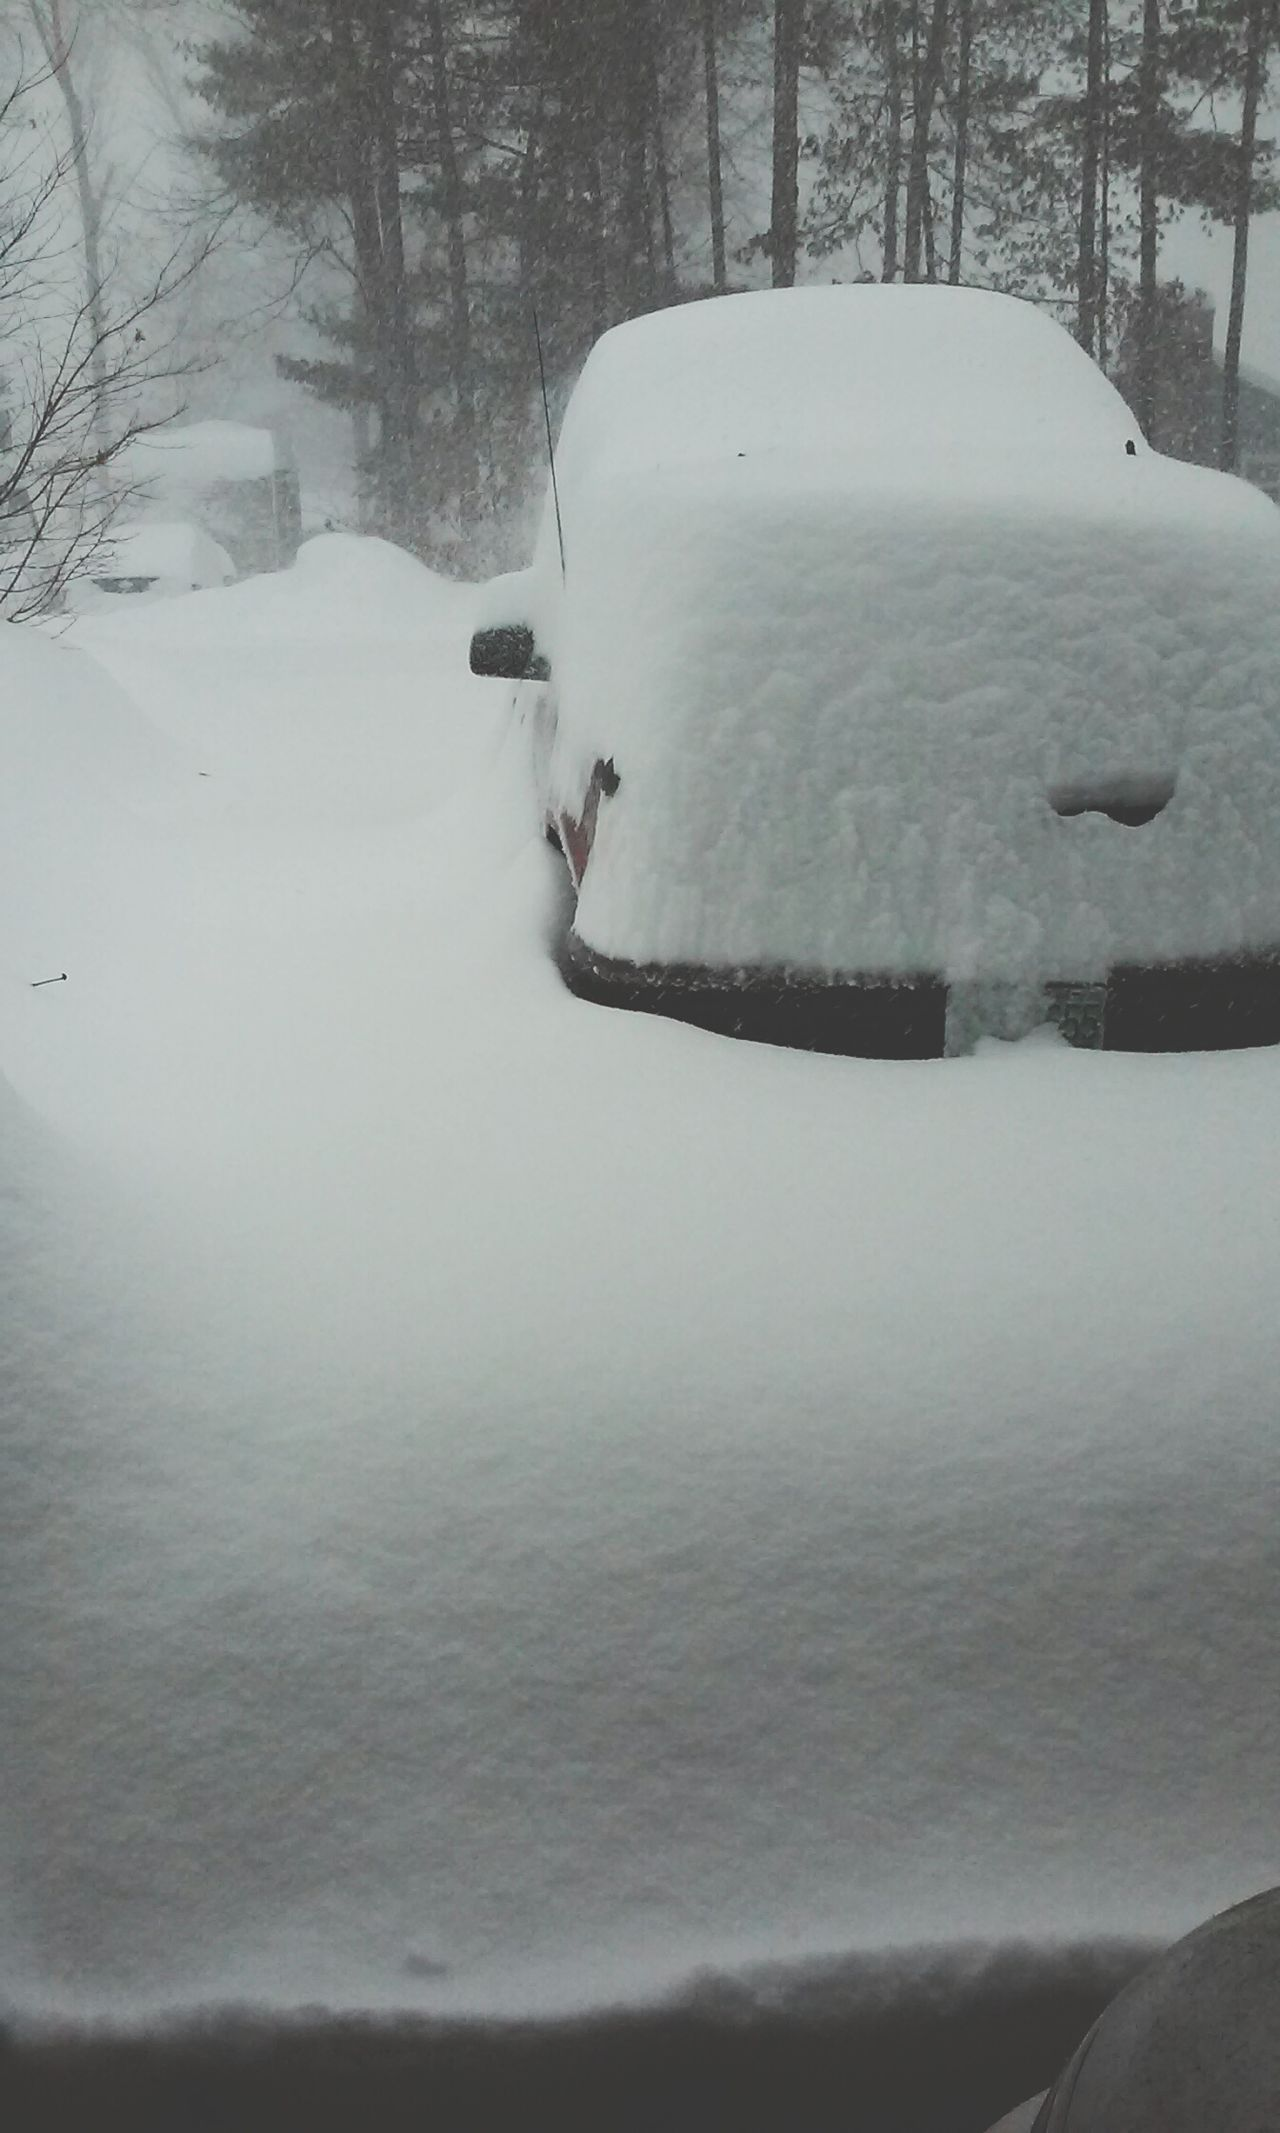 Blizzard 2015 10:00 this morning, 25 inches and not half way through the storm yet